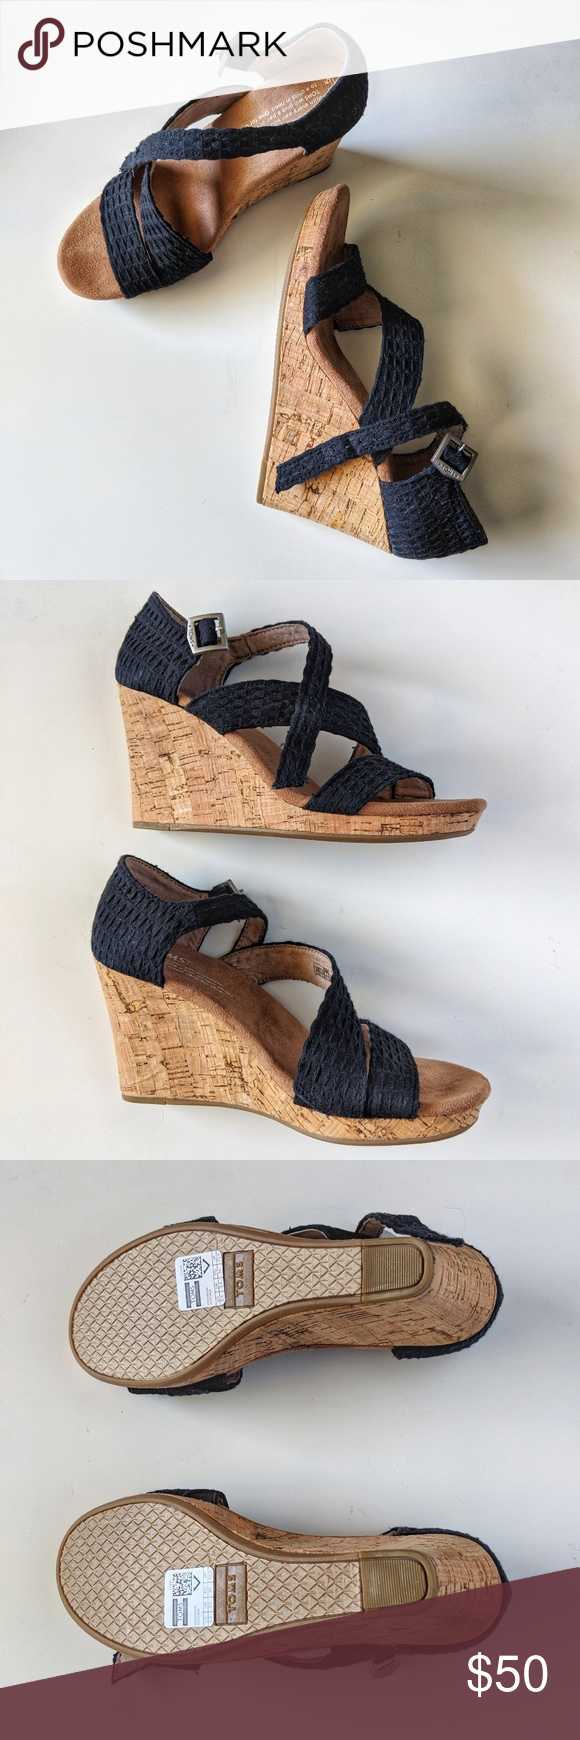 Never Worn! Black/Cork Tom's Wedge Sandals NWOB. These shoes have never touched pavement.   Tom's wedge sandals in black with 3.5in cork heel. Toms Shoes Wedges #tomwedges Never Worn! Black/Cork Tom's Wedge Sandals NWOB. These shoes have never touched pavement.   Tom's wedge sandals in black with 3.5in cork heel. Toms Shoes Wedges #tomwedges